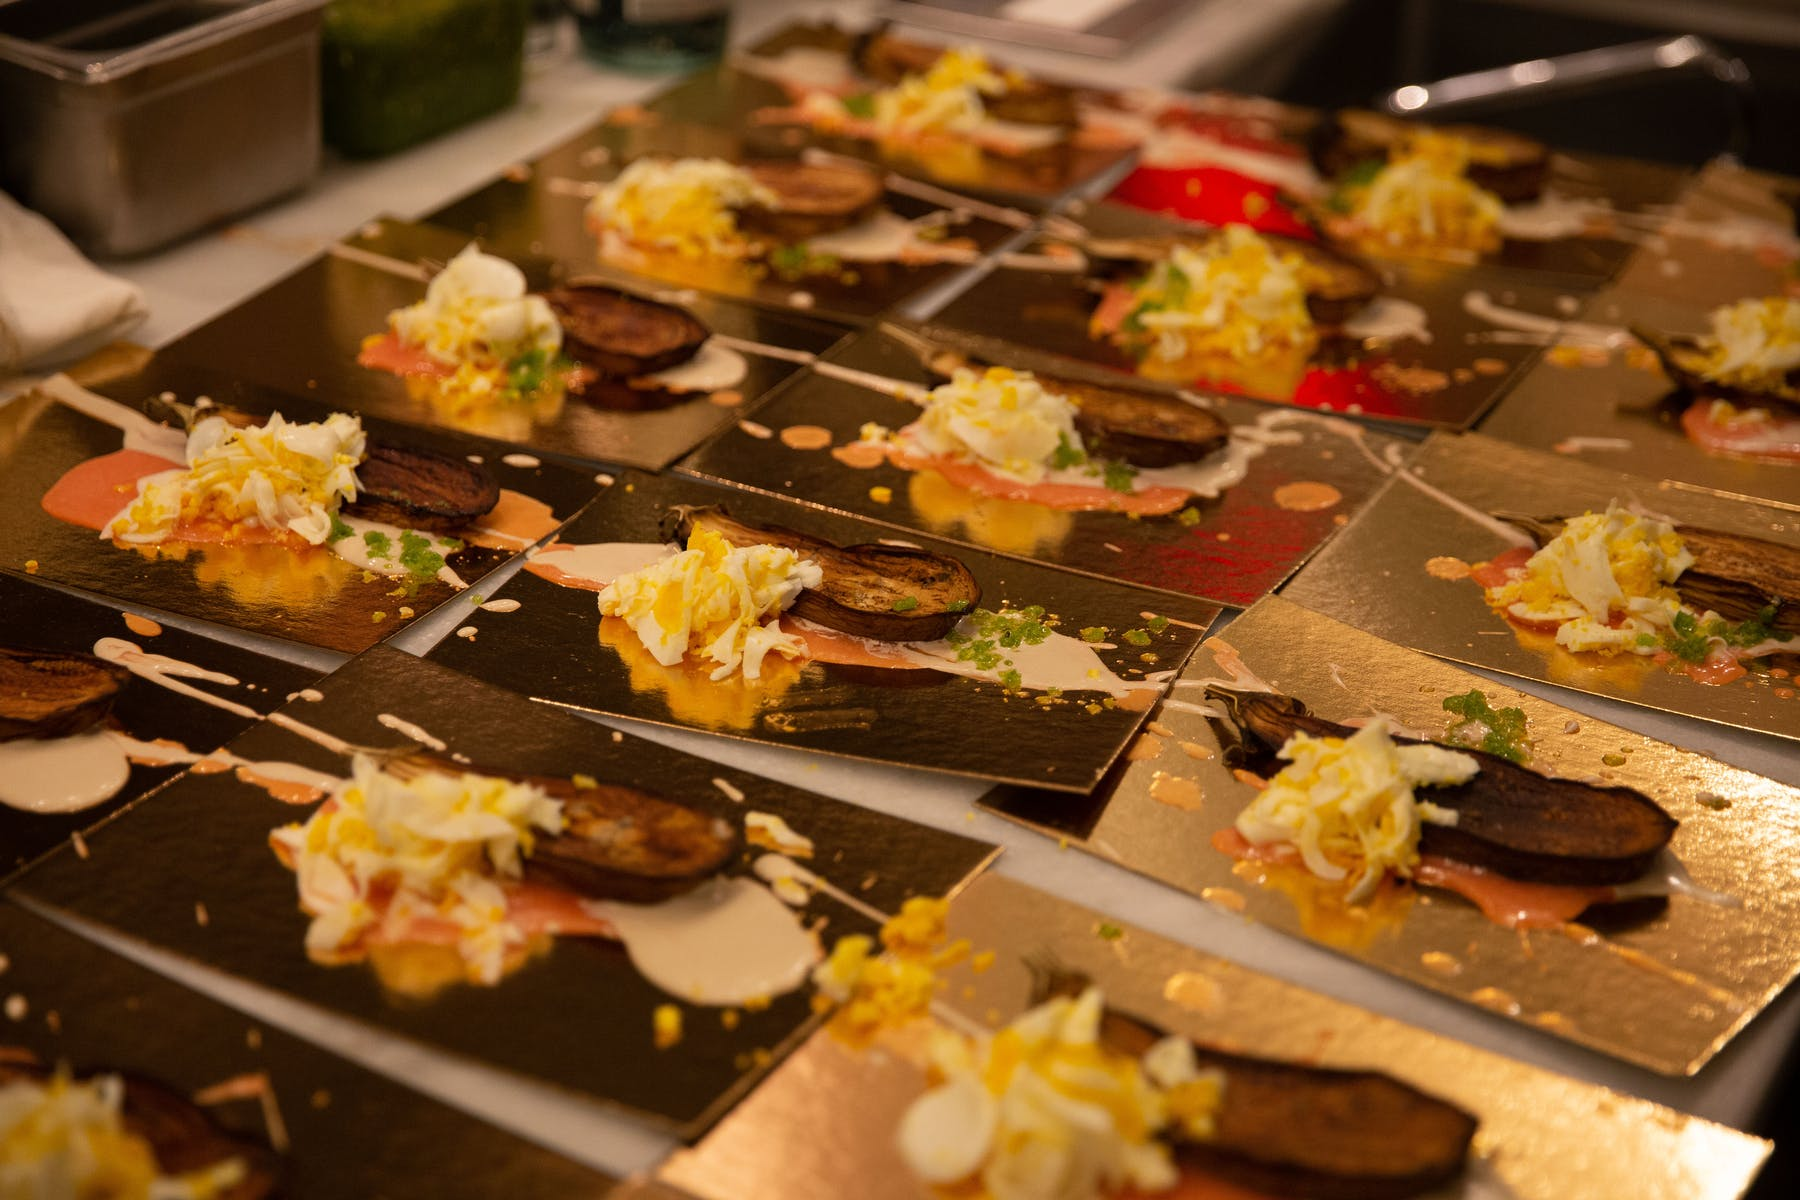 Individually plated appetizers for a party